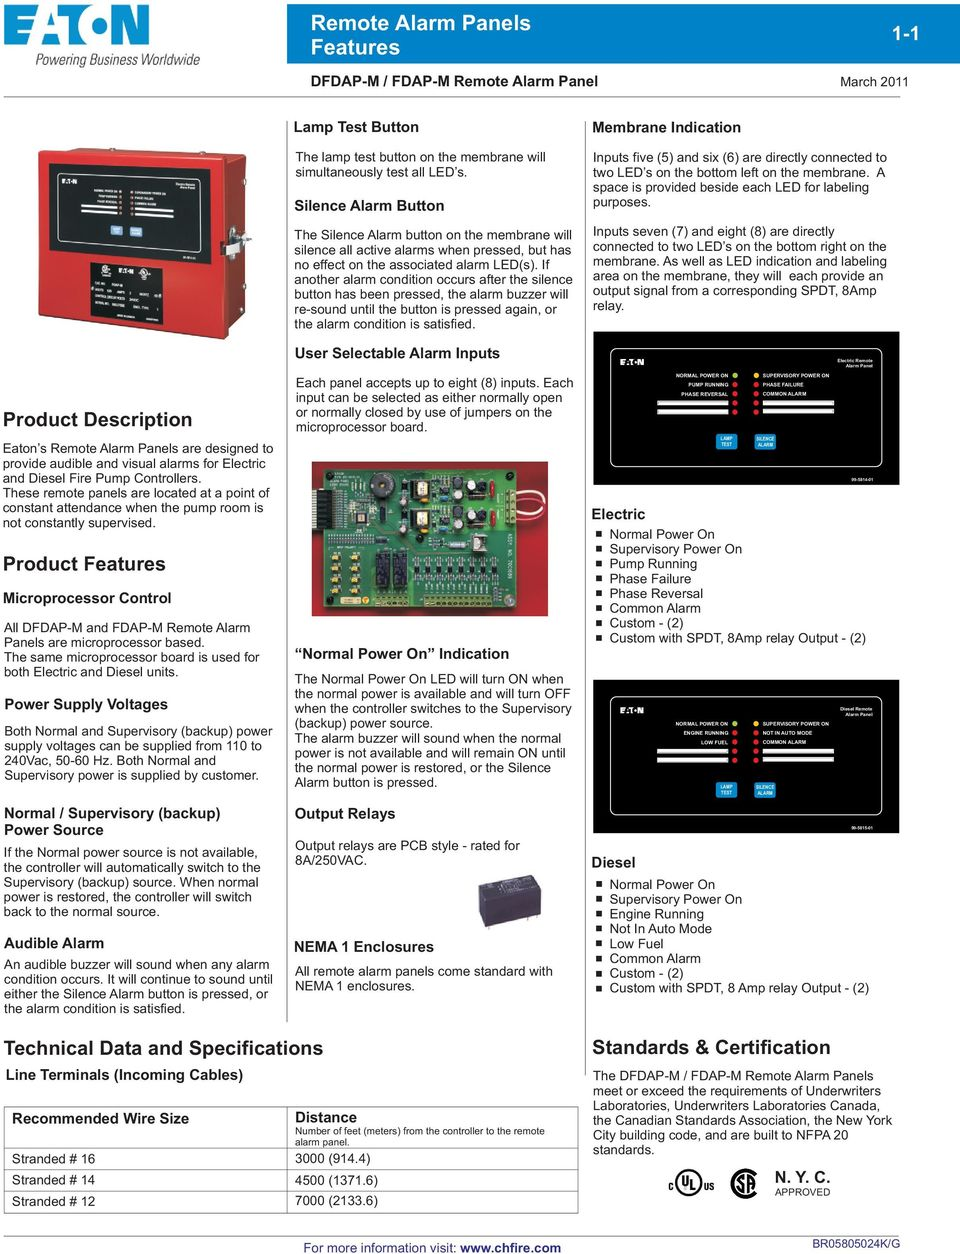 Product Features Microprocessor Control All DFDAP-M and FDAP-M Remote Alarm Panels are microprocessor based. The same microprocessor board is used for both Electric and Diesel units.